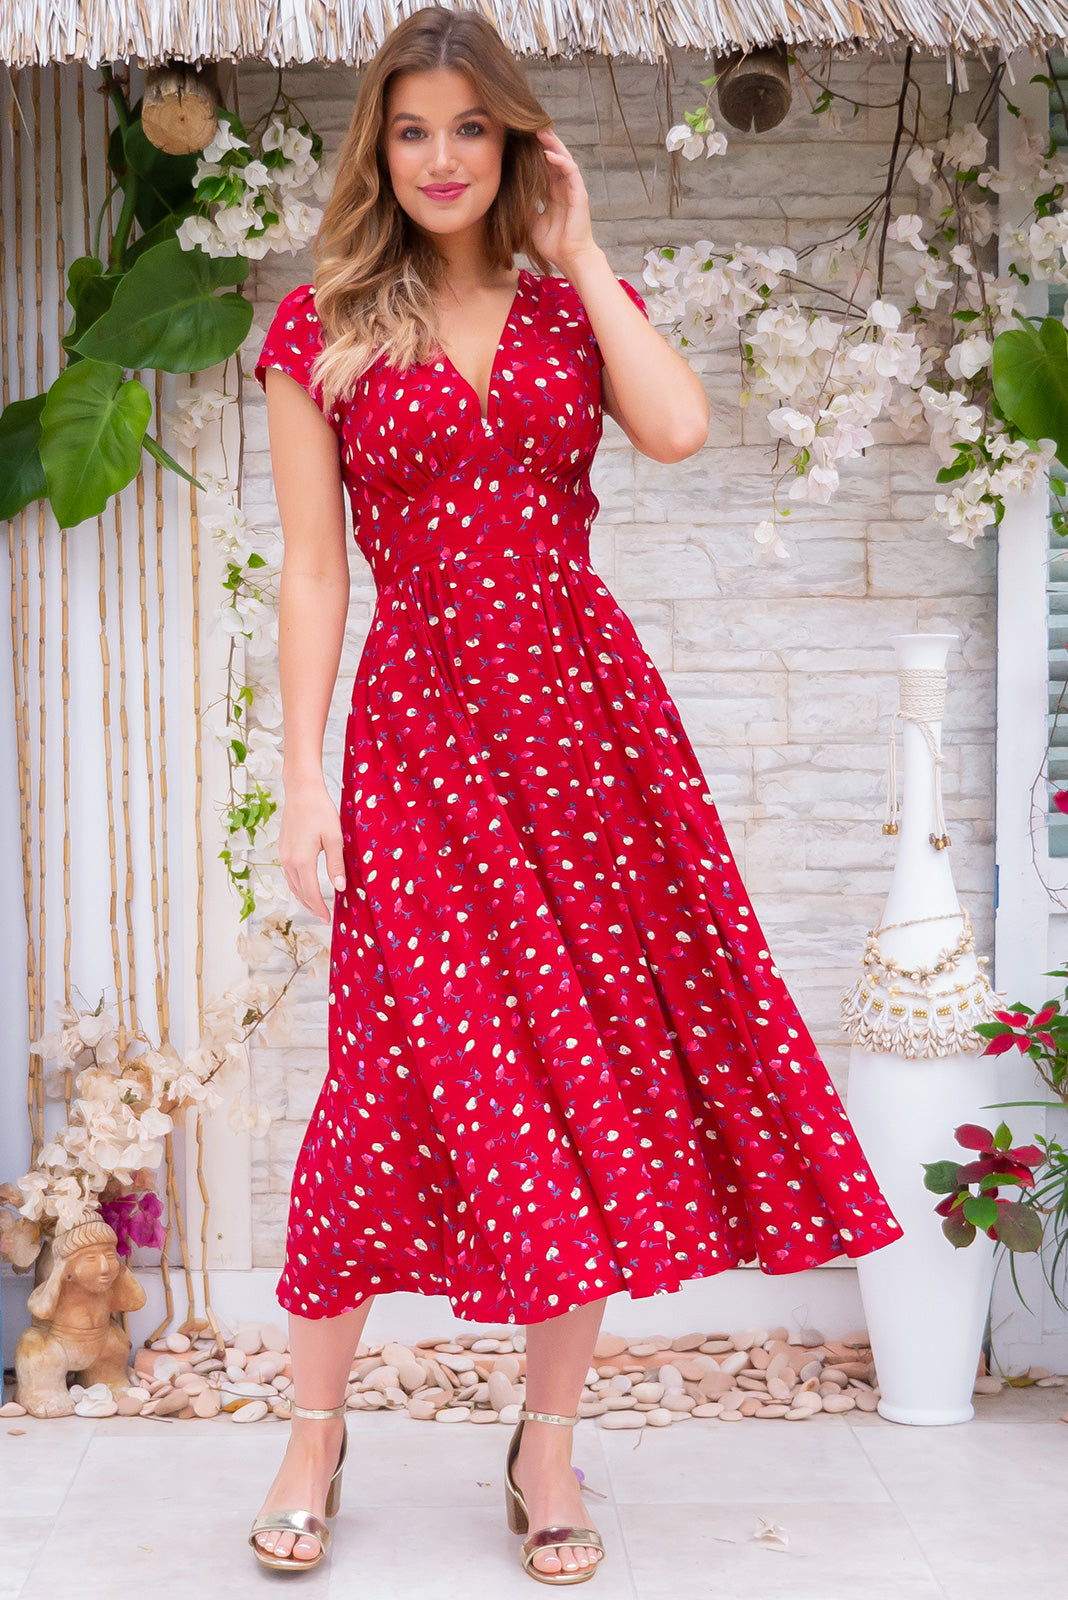 Lizzie Valentino Red Dress Romantic Retro Scarlet Floral Rayon Midi Dress With pockets and cap sleeves.